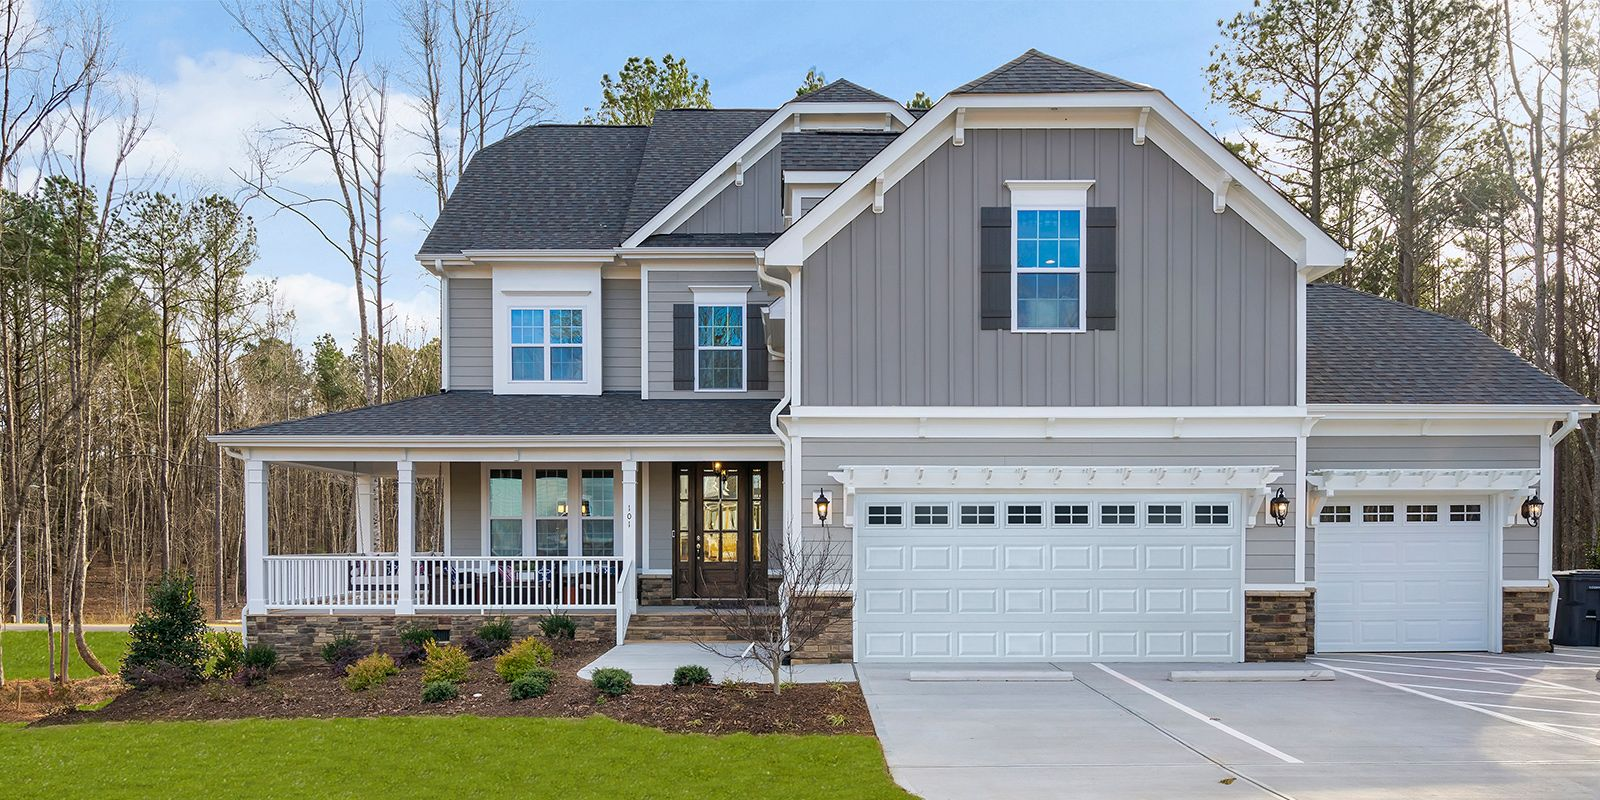 Holly Springs - Ballentine Place:Ballentine Place Edenton Model Home, Mattamy Homes